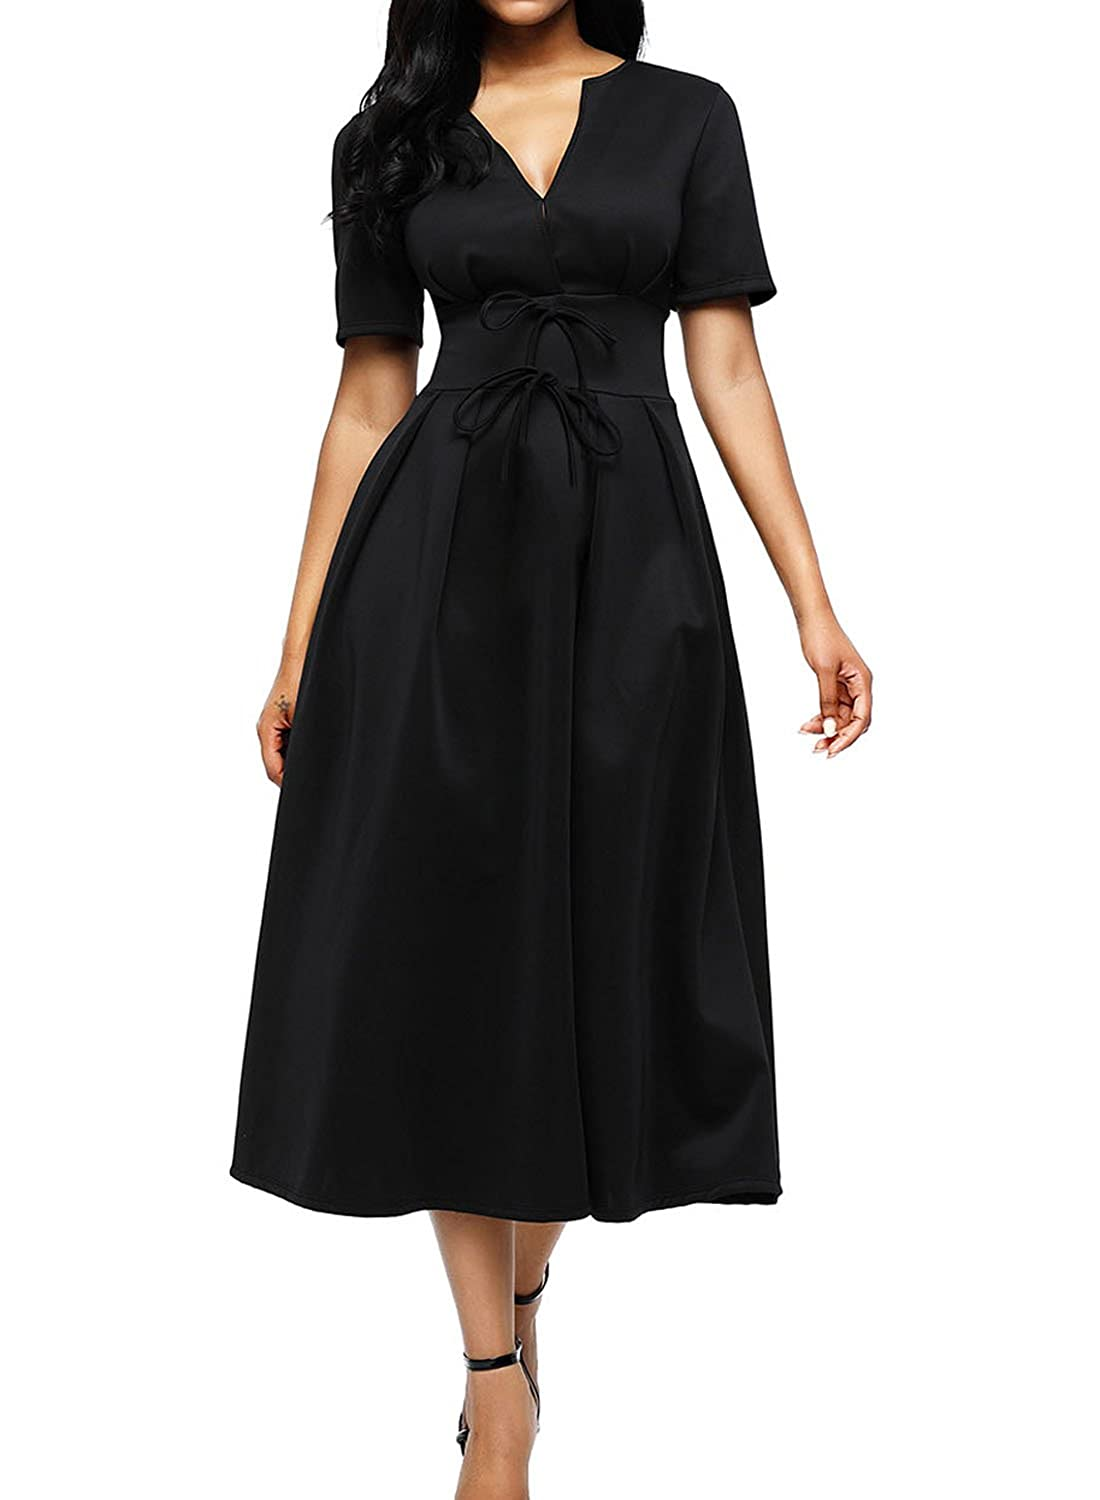 eb37e98a45 Elegant bodycon midi flared dresses. Body-flattering with split neckline  and floating skirt. A split v cut neck, short sleeves, high rise and wide  waistband ...